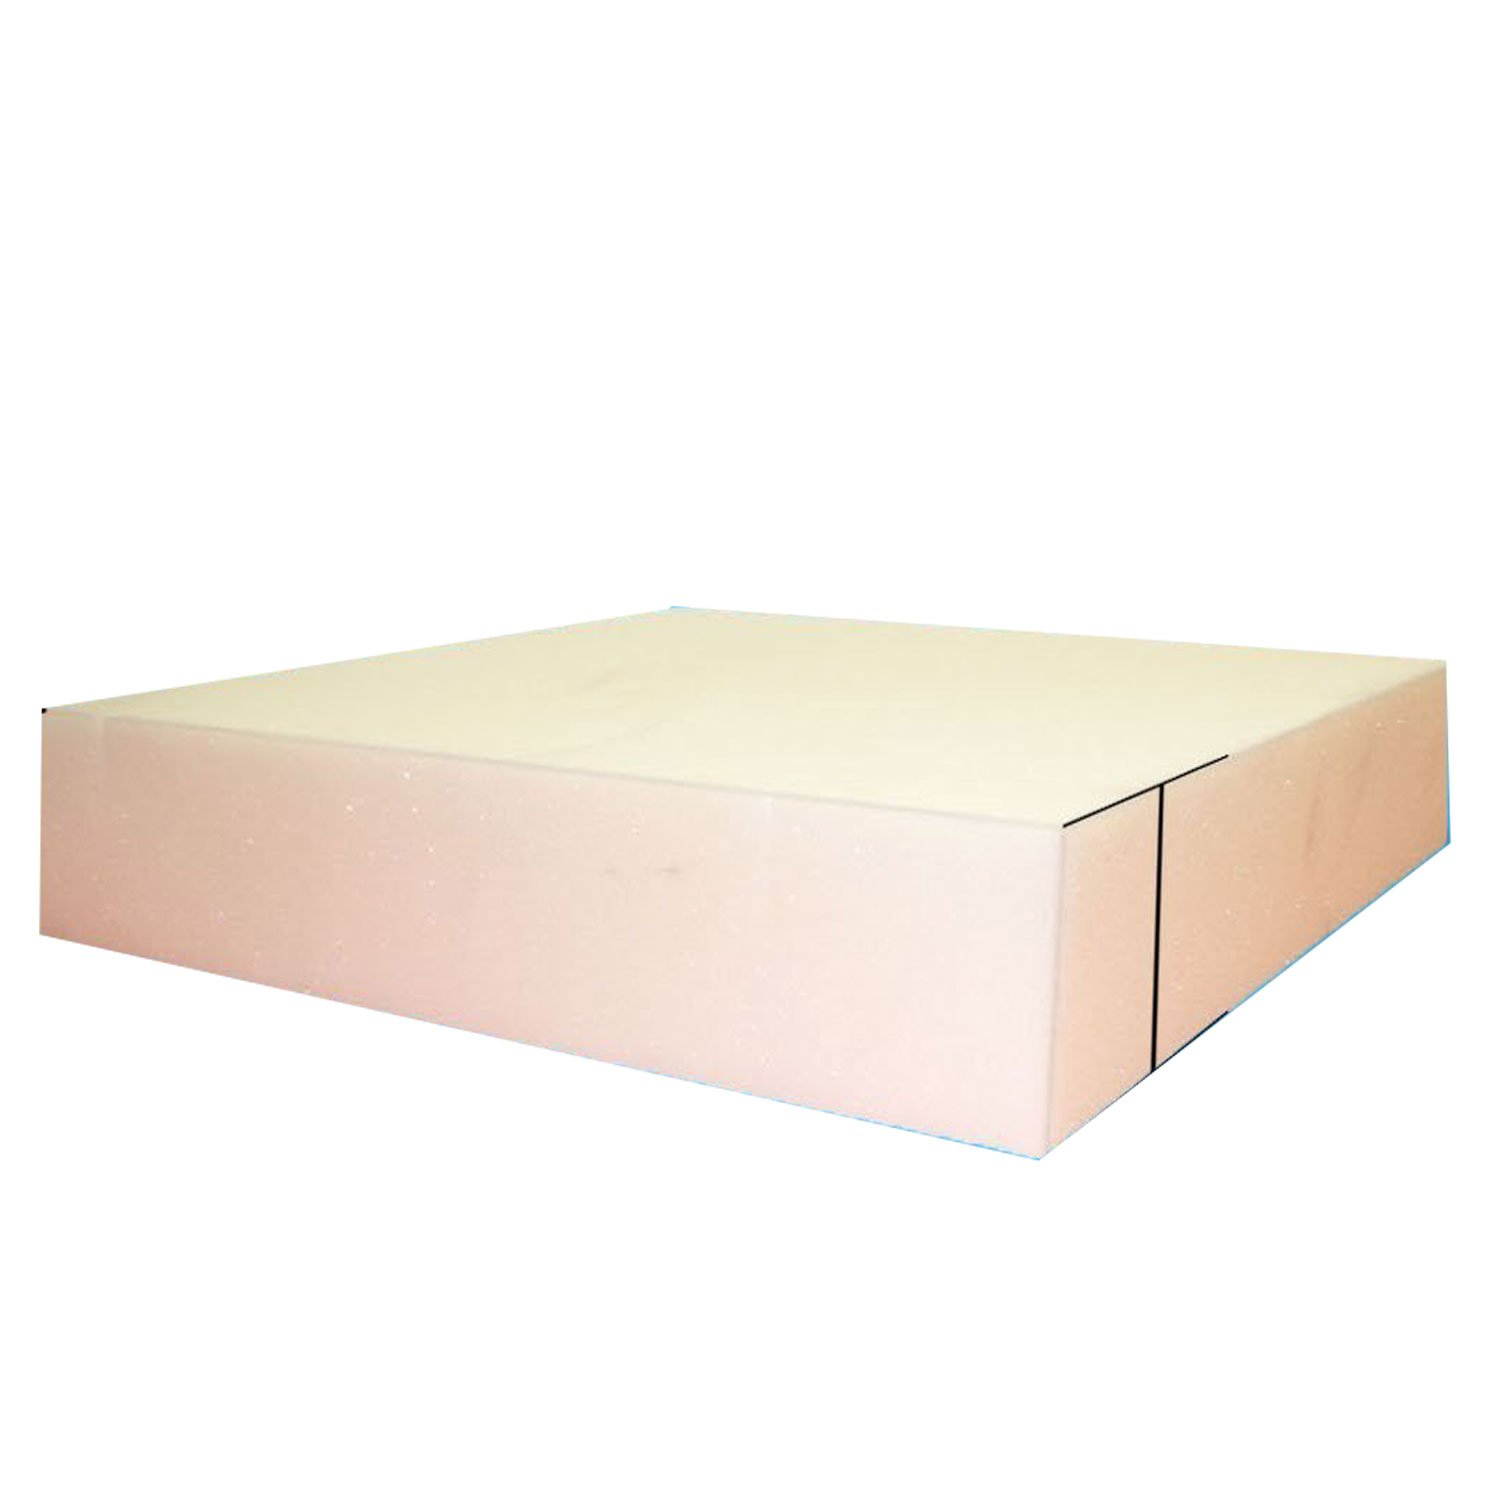 Mybecca 5'' x 24'' x 24'' New Density Upholstery Foam Cushion (Seat Replacement, Upholstery Sheet, Foam Padding) New and Comfortable Soft Technology with high Density by Mybecca